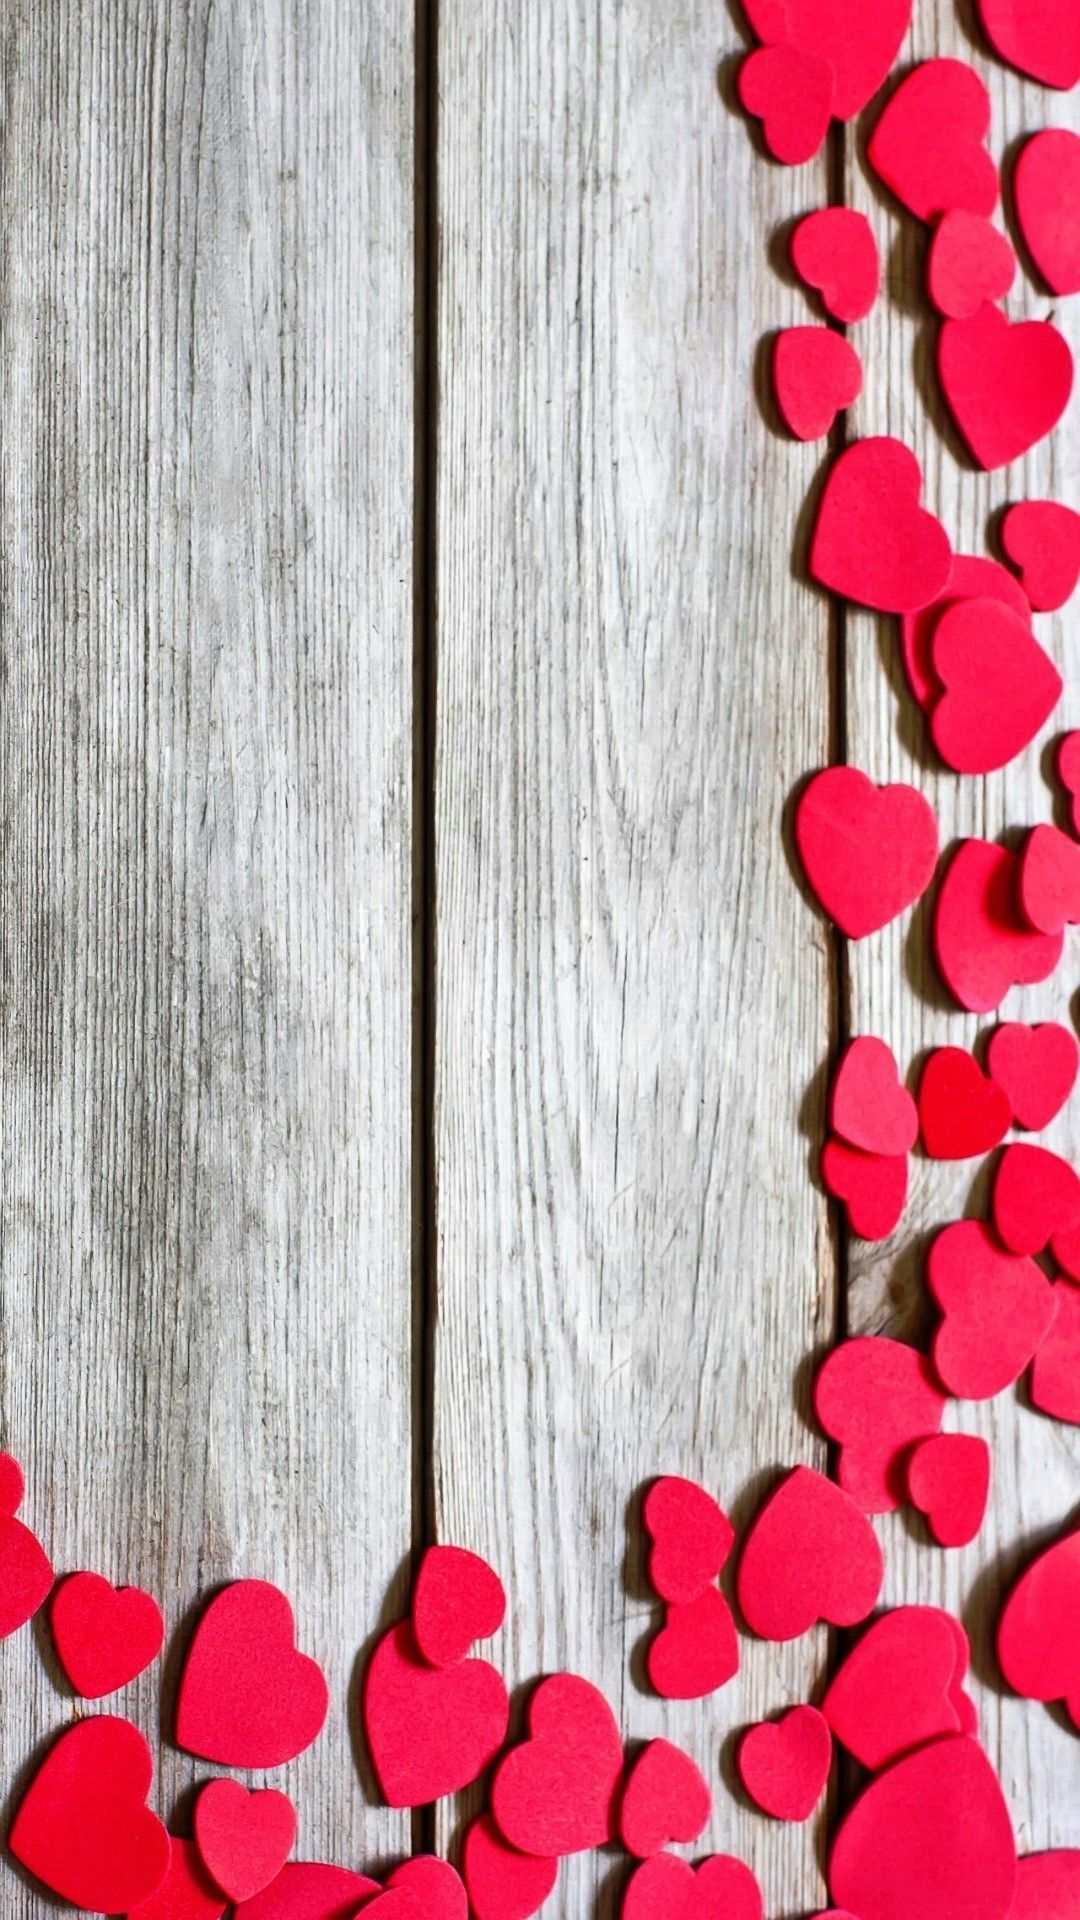 Hearts Wooden Wallpaper For Mobile Best Hd Wallpapers In Love In